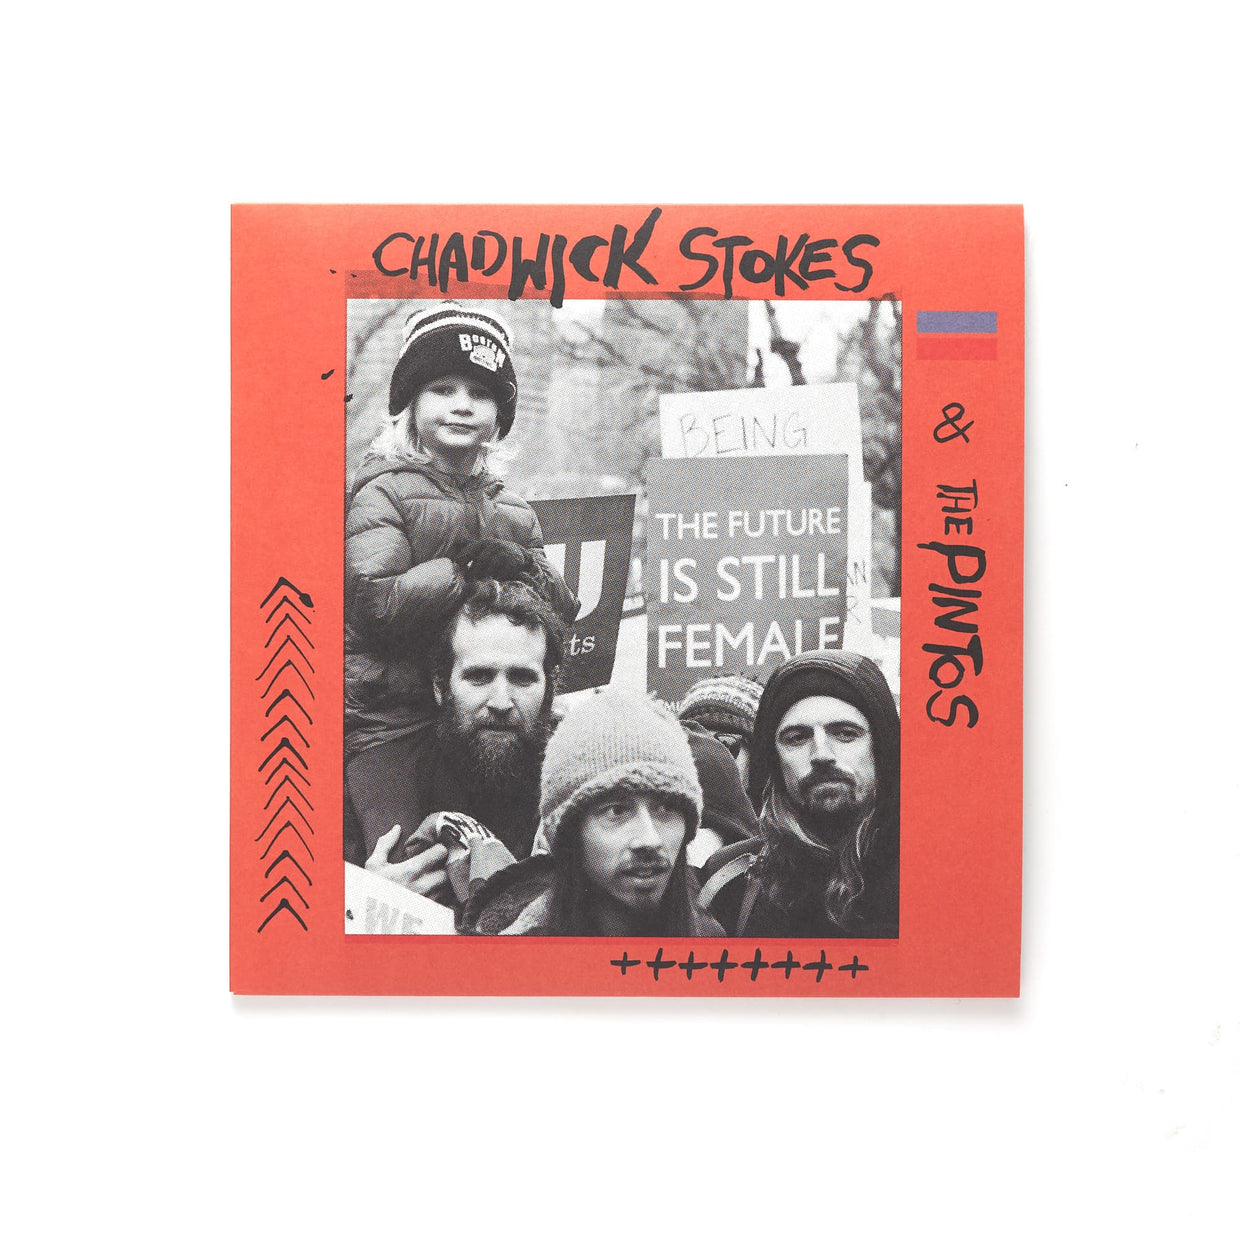 Chadwick Stokes & The Pintos 'Self-Titled' 12